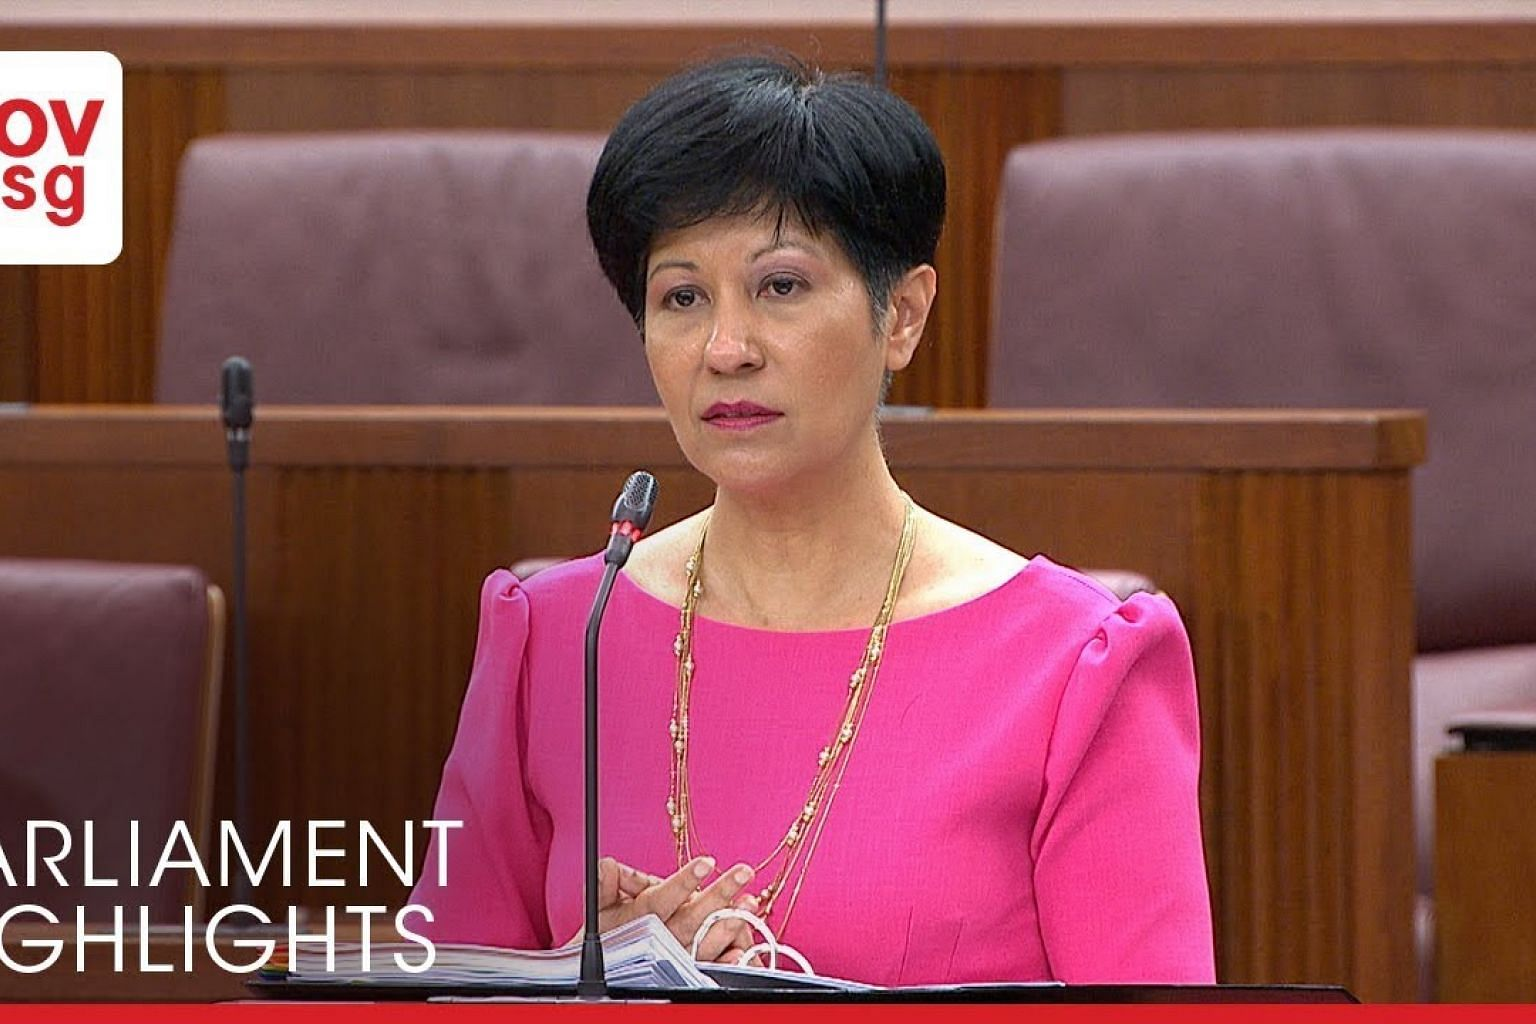 Second Minister for Education Indranee Rajah on inclusivity and a joy of learning